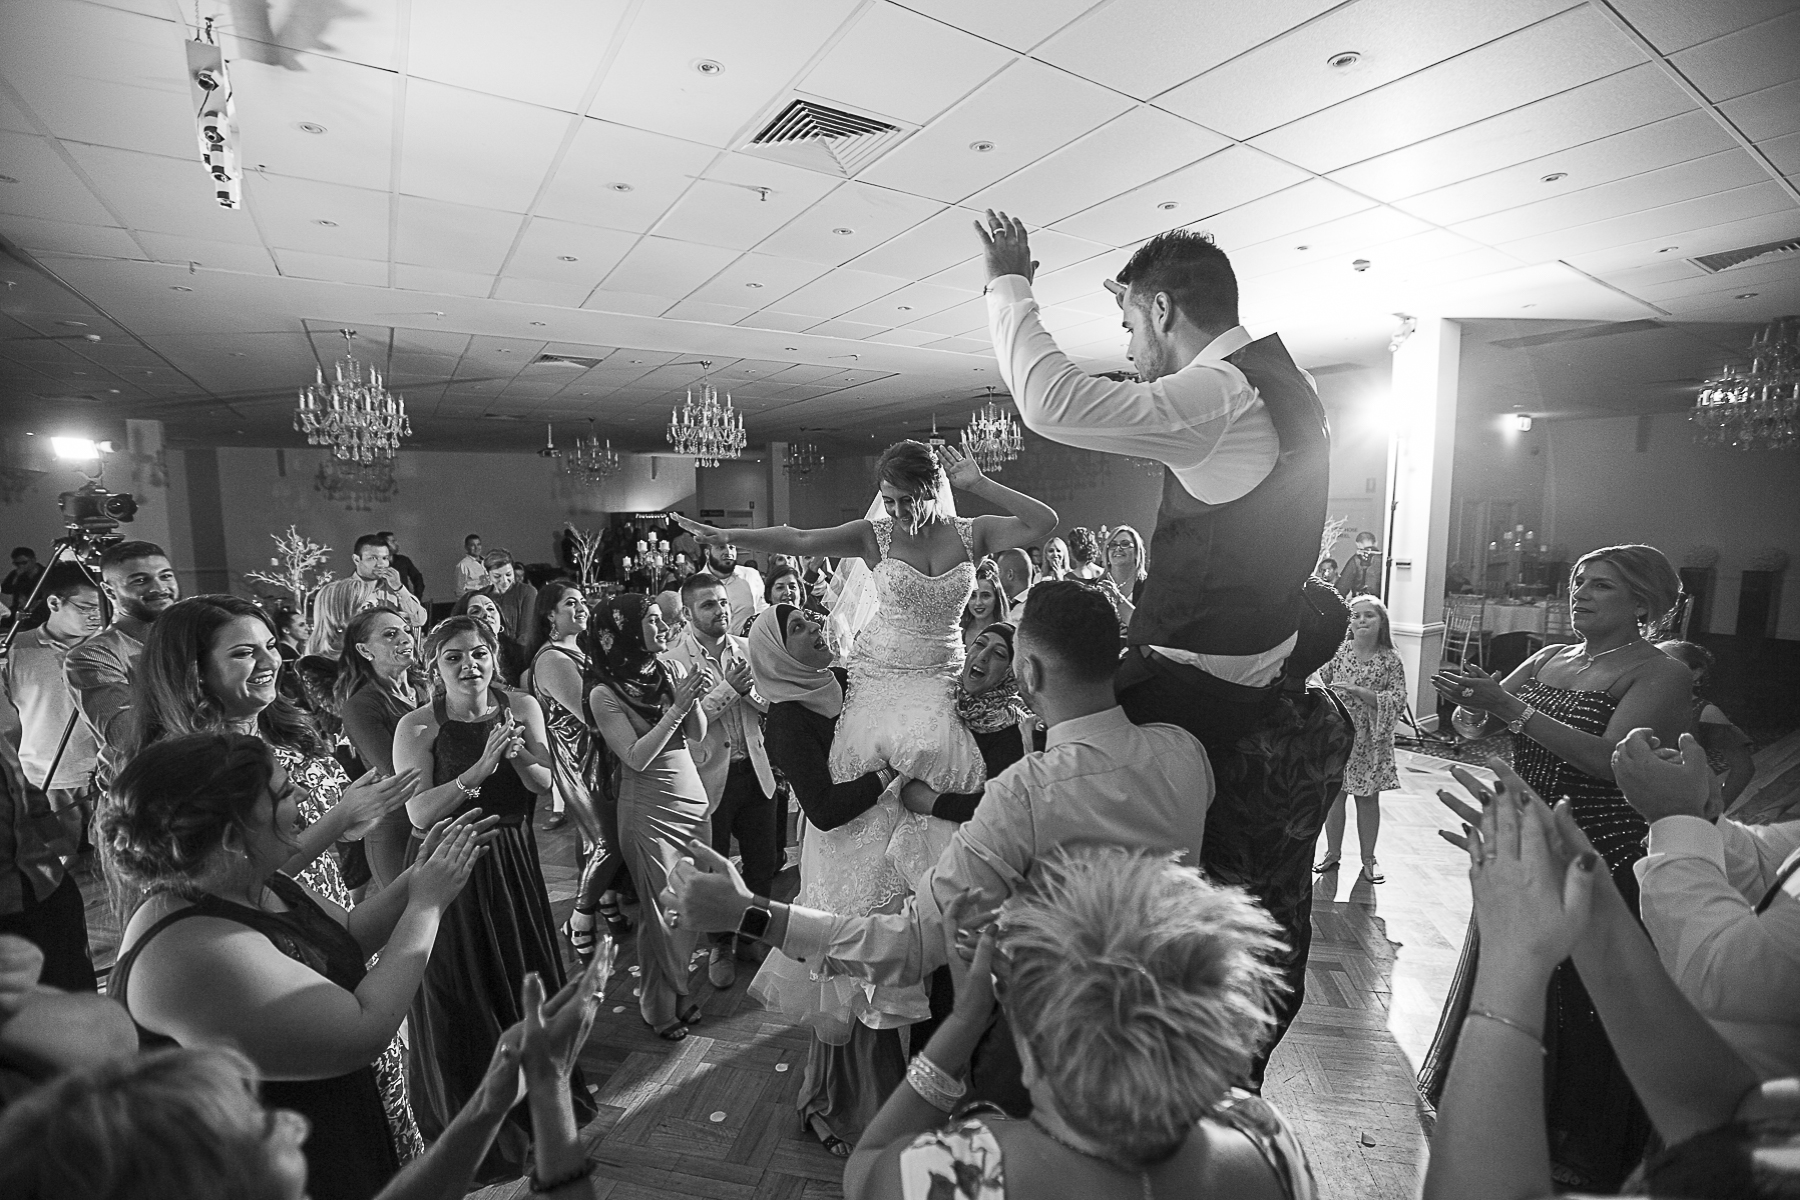 Wedding guests lifted up bride and groom celebrating during the dance on dance floor | Fantasie Photography